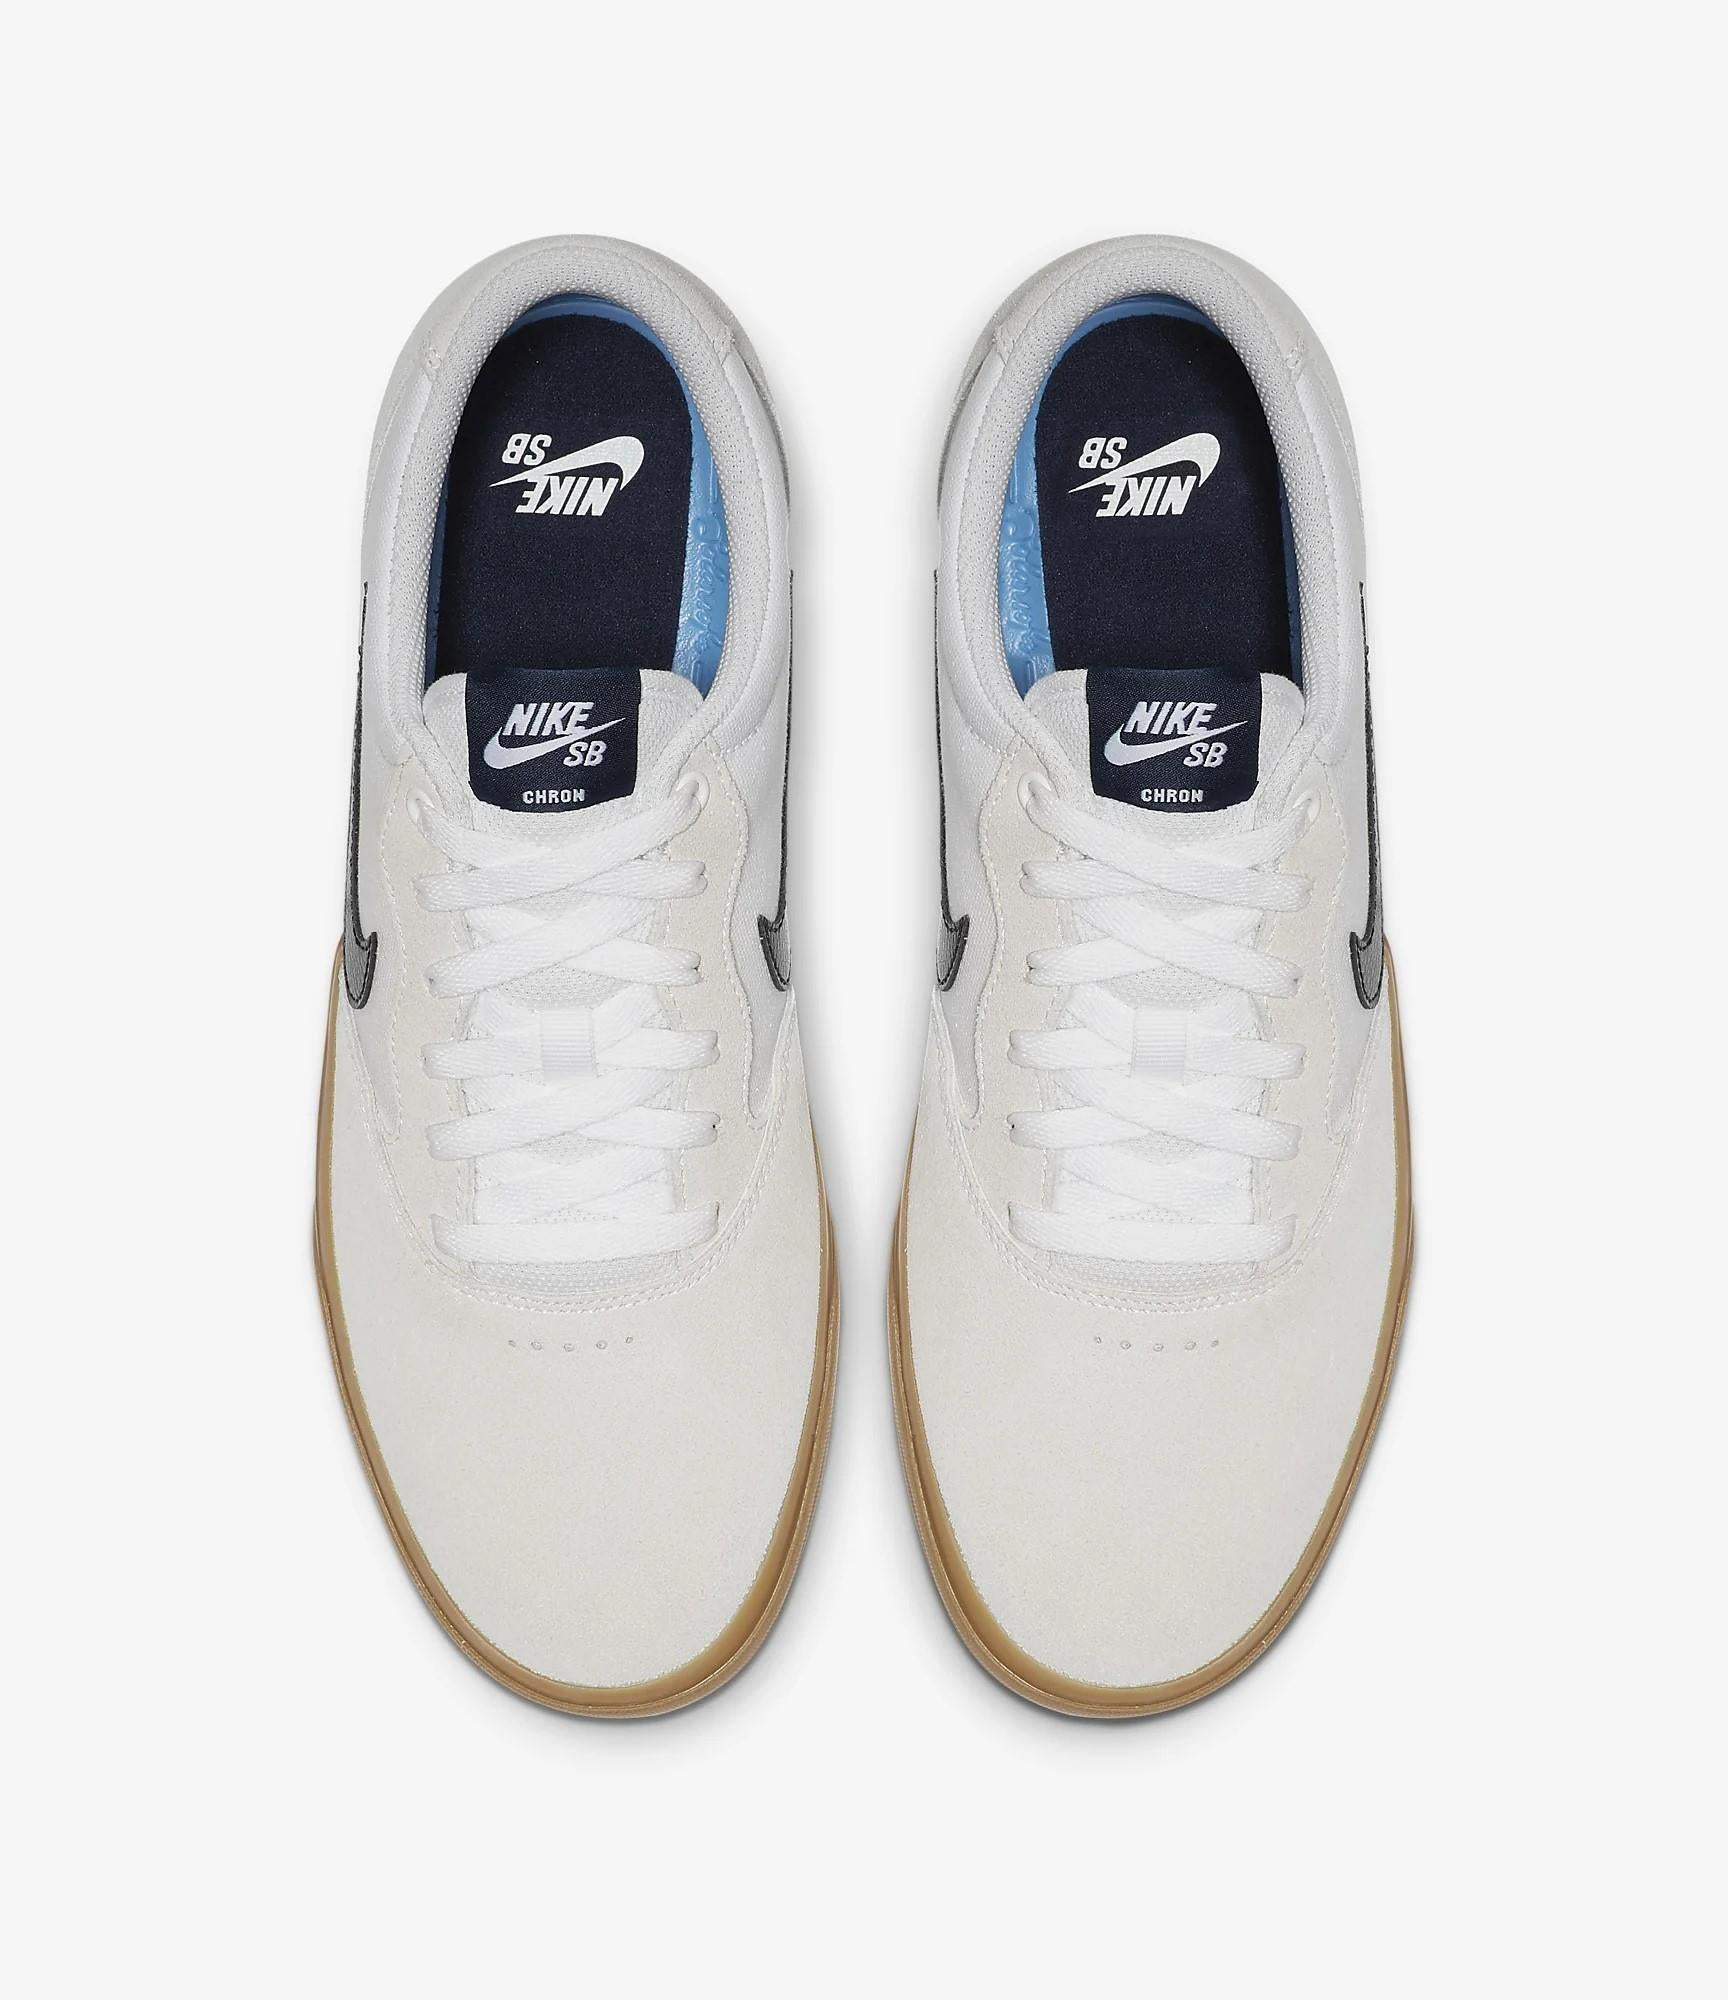 nike sb chron white